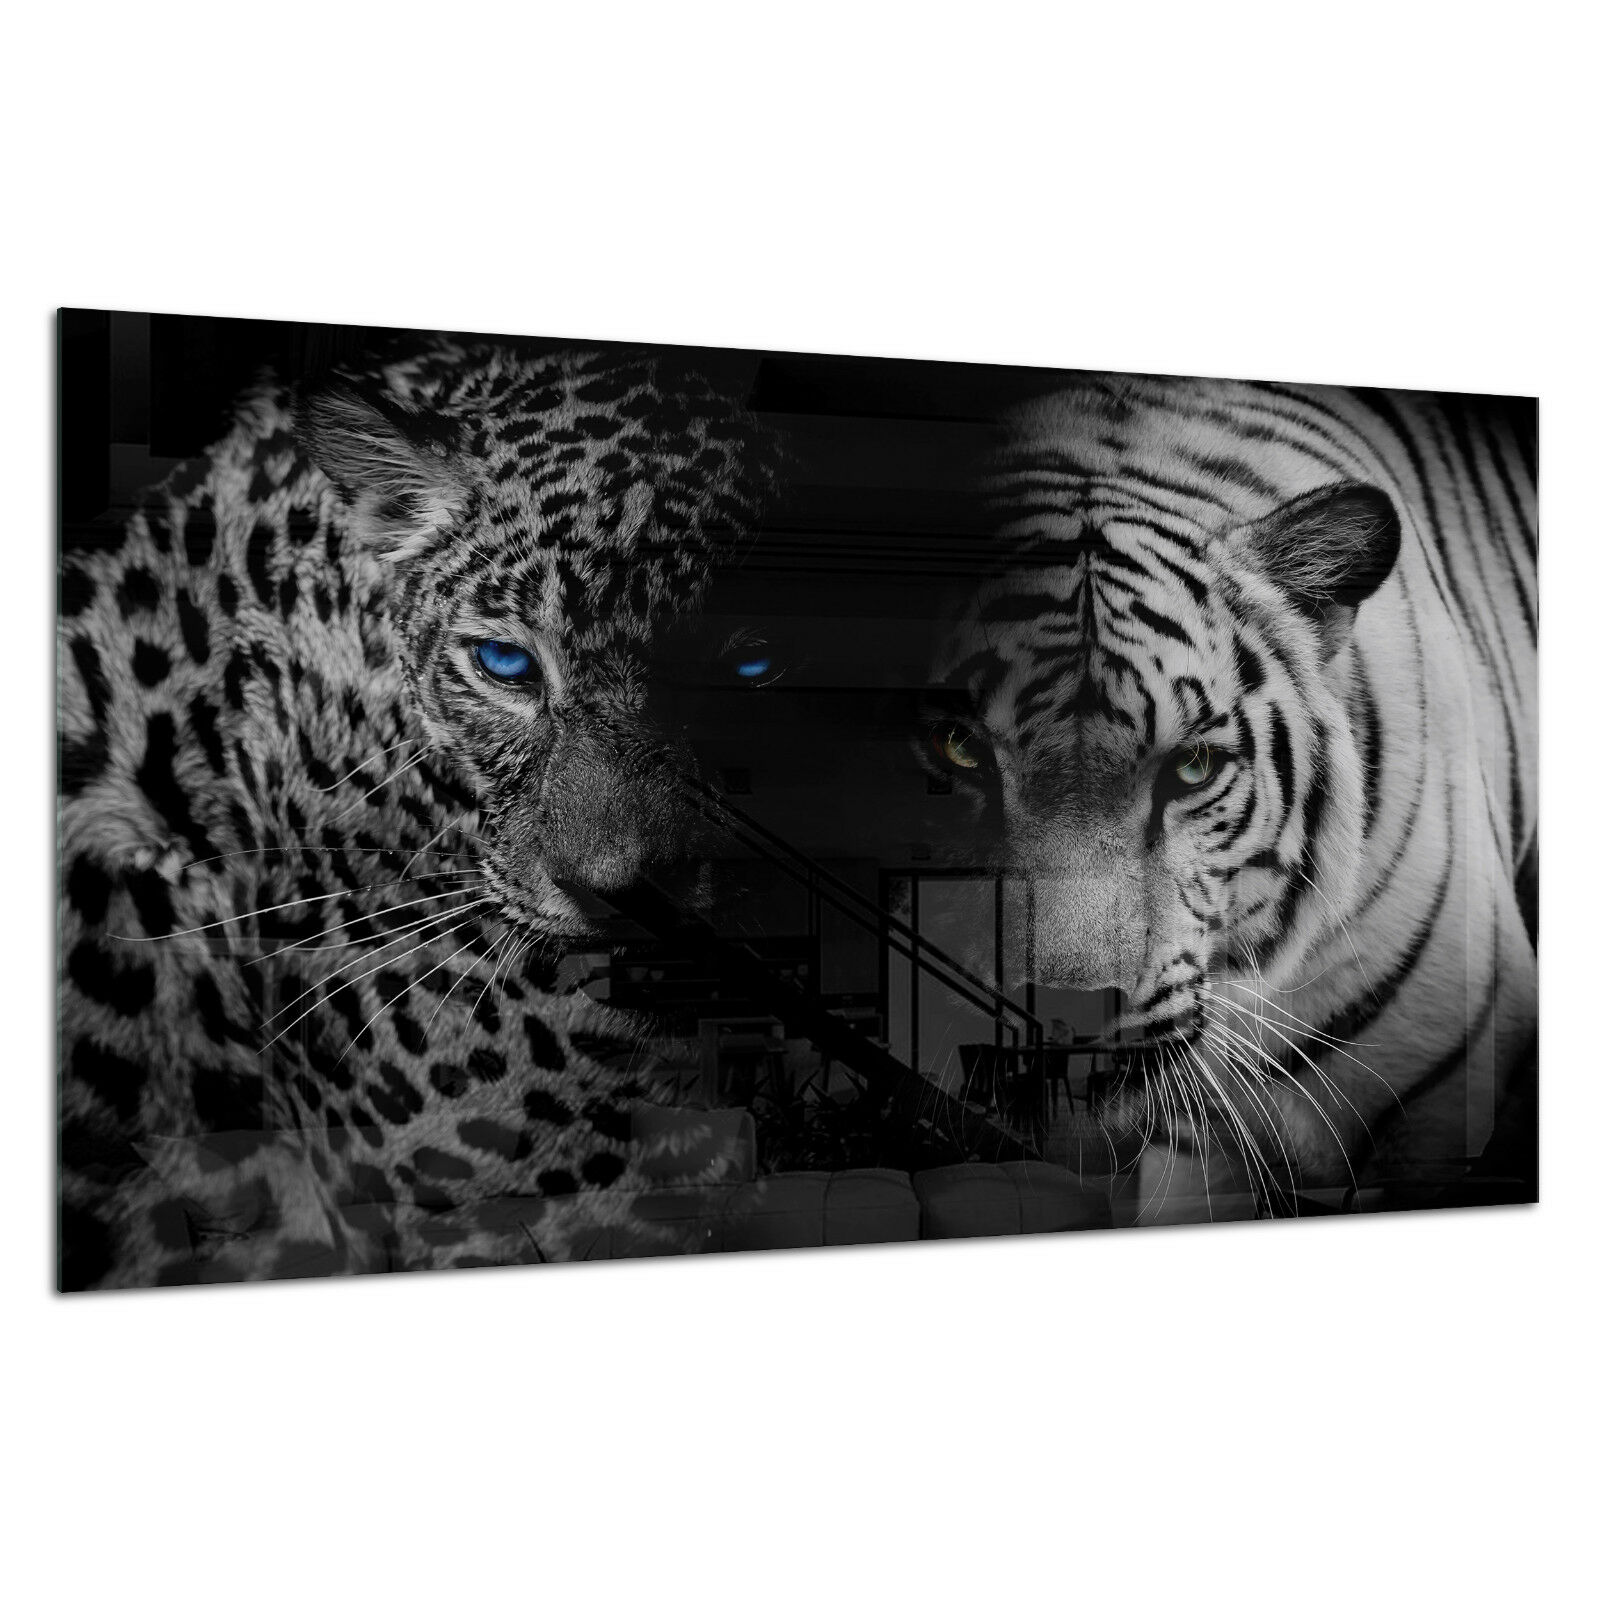 Tempered Glass Photo Print Wall Art Picture B&W Tiger Panther Cat Prizma GWA0344